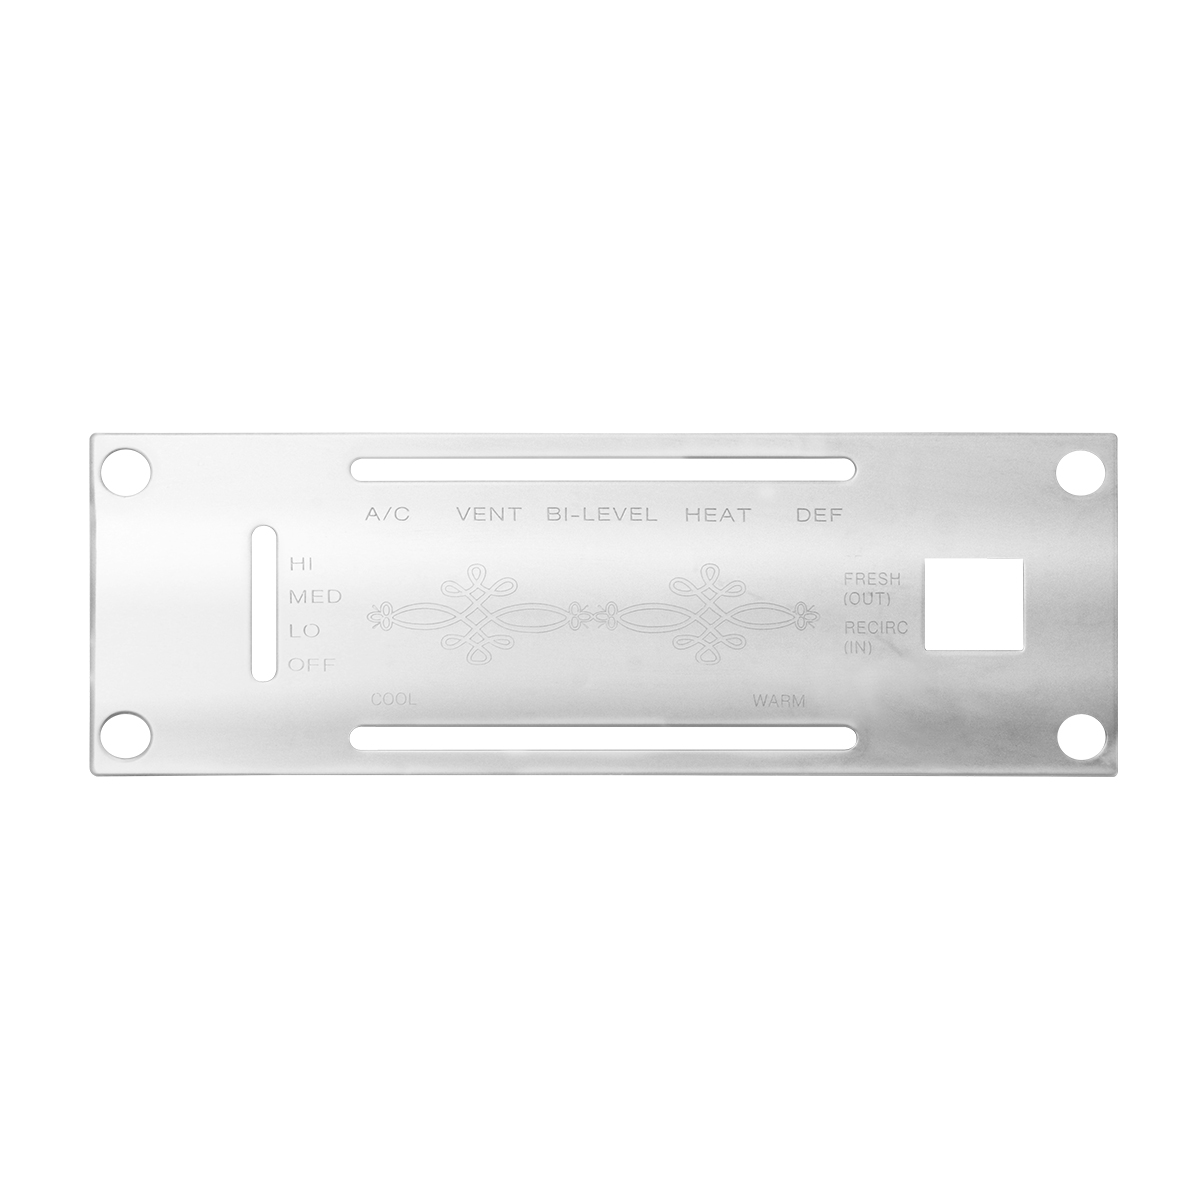 68253 Stainless Steel A/C Control Panel Plate for Kenworth